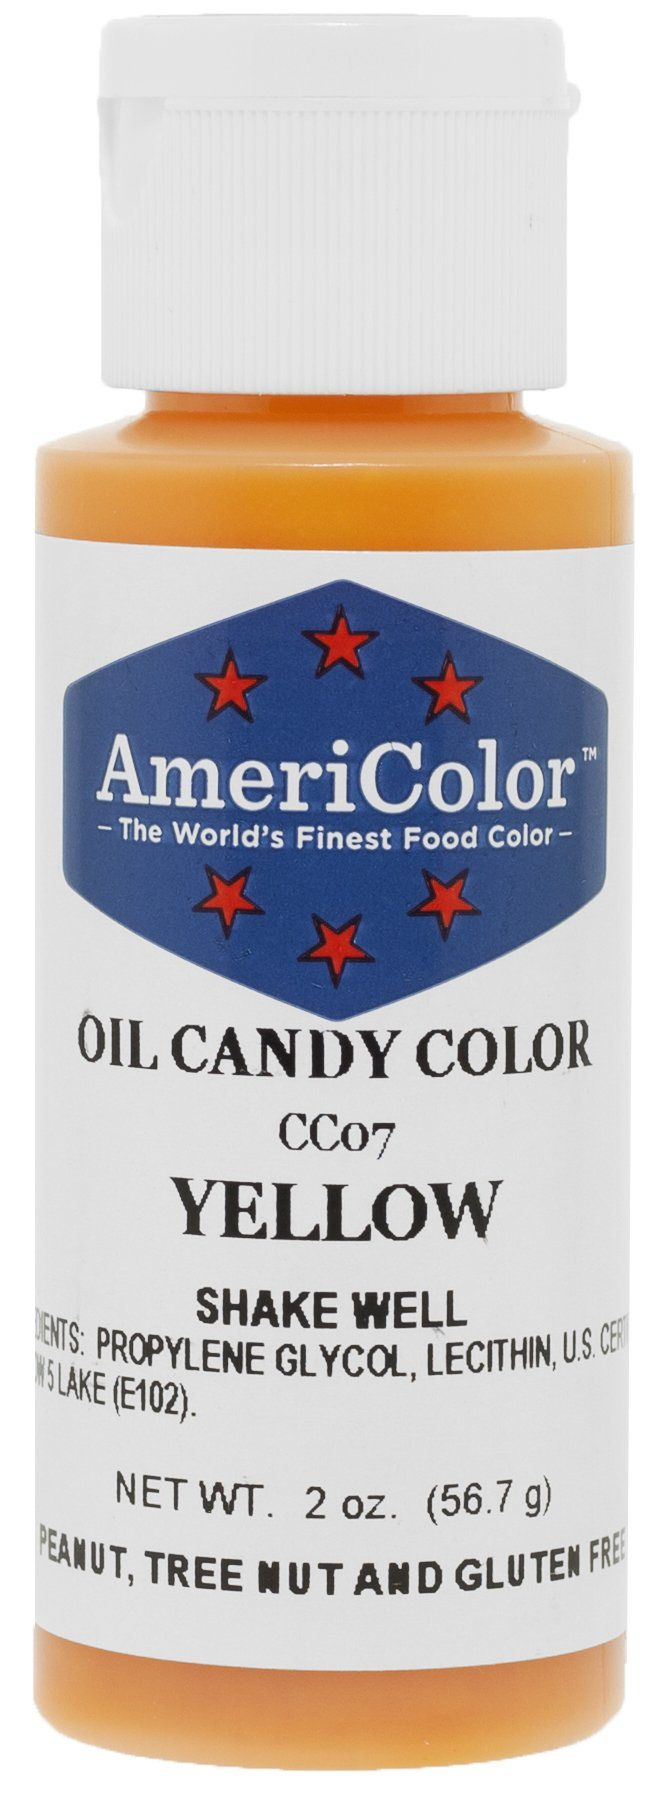 AmeriColor Candy Oil Food Color, 2-Ounce, Yelllow